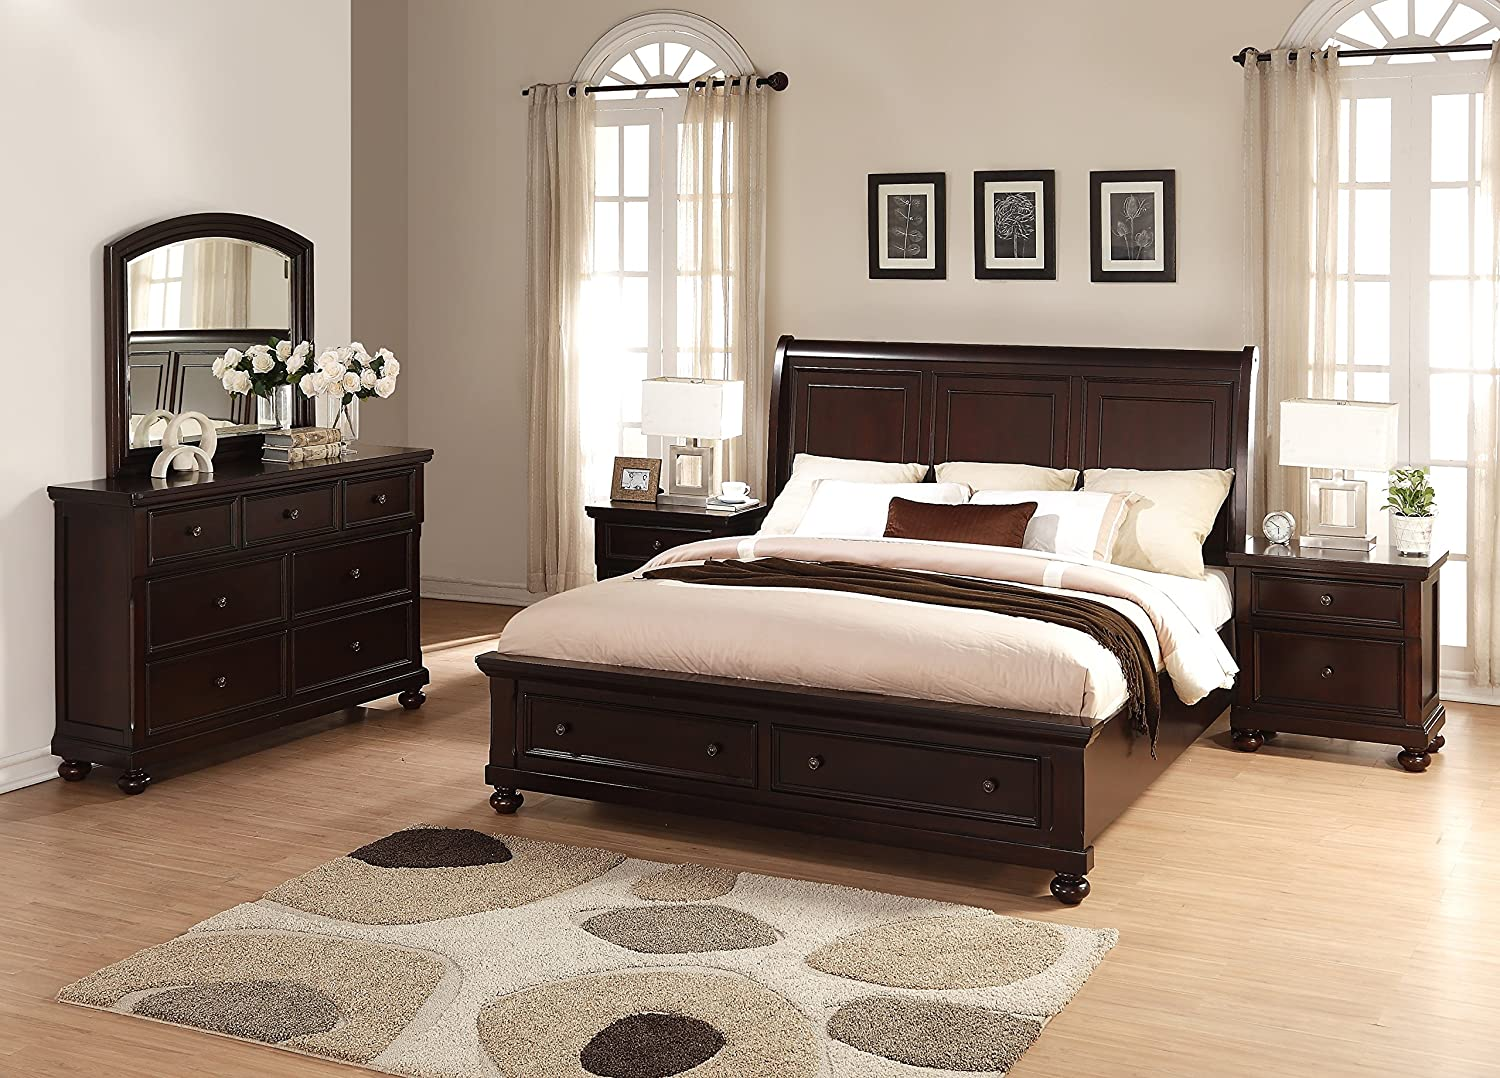 Amazoncom Roundhill Furniture Brishland Storage Bedroom Set